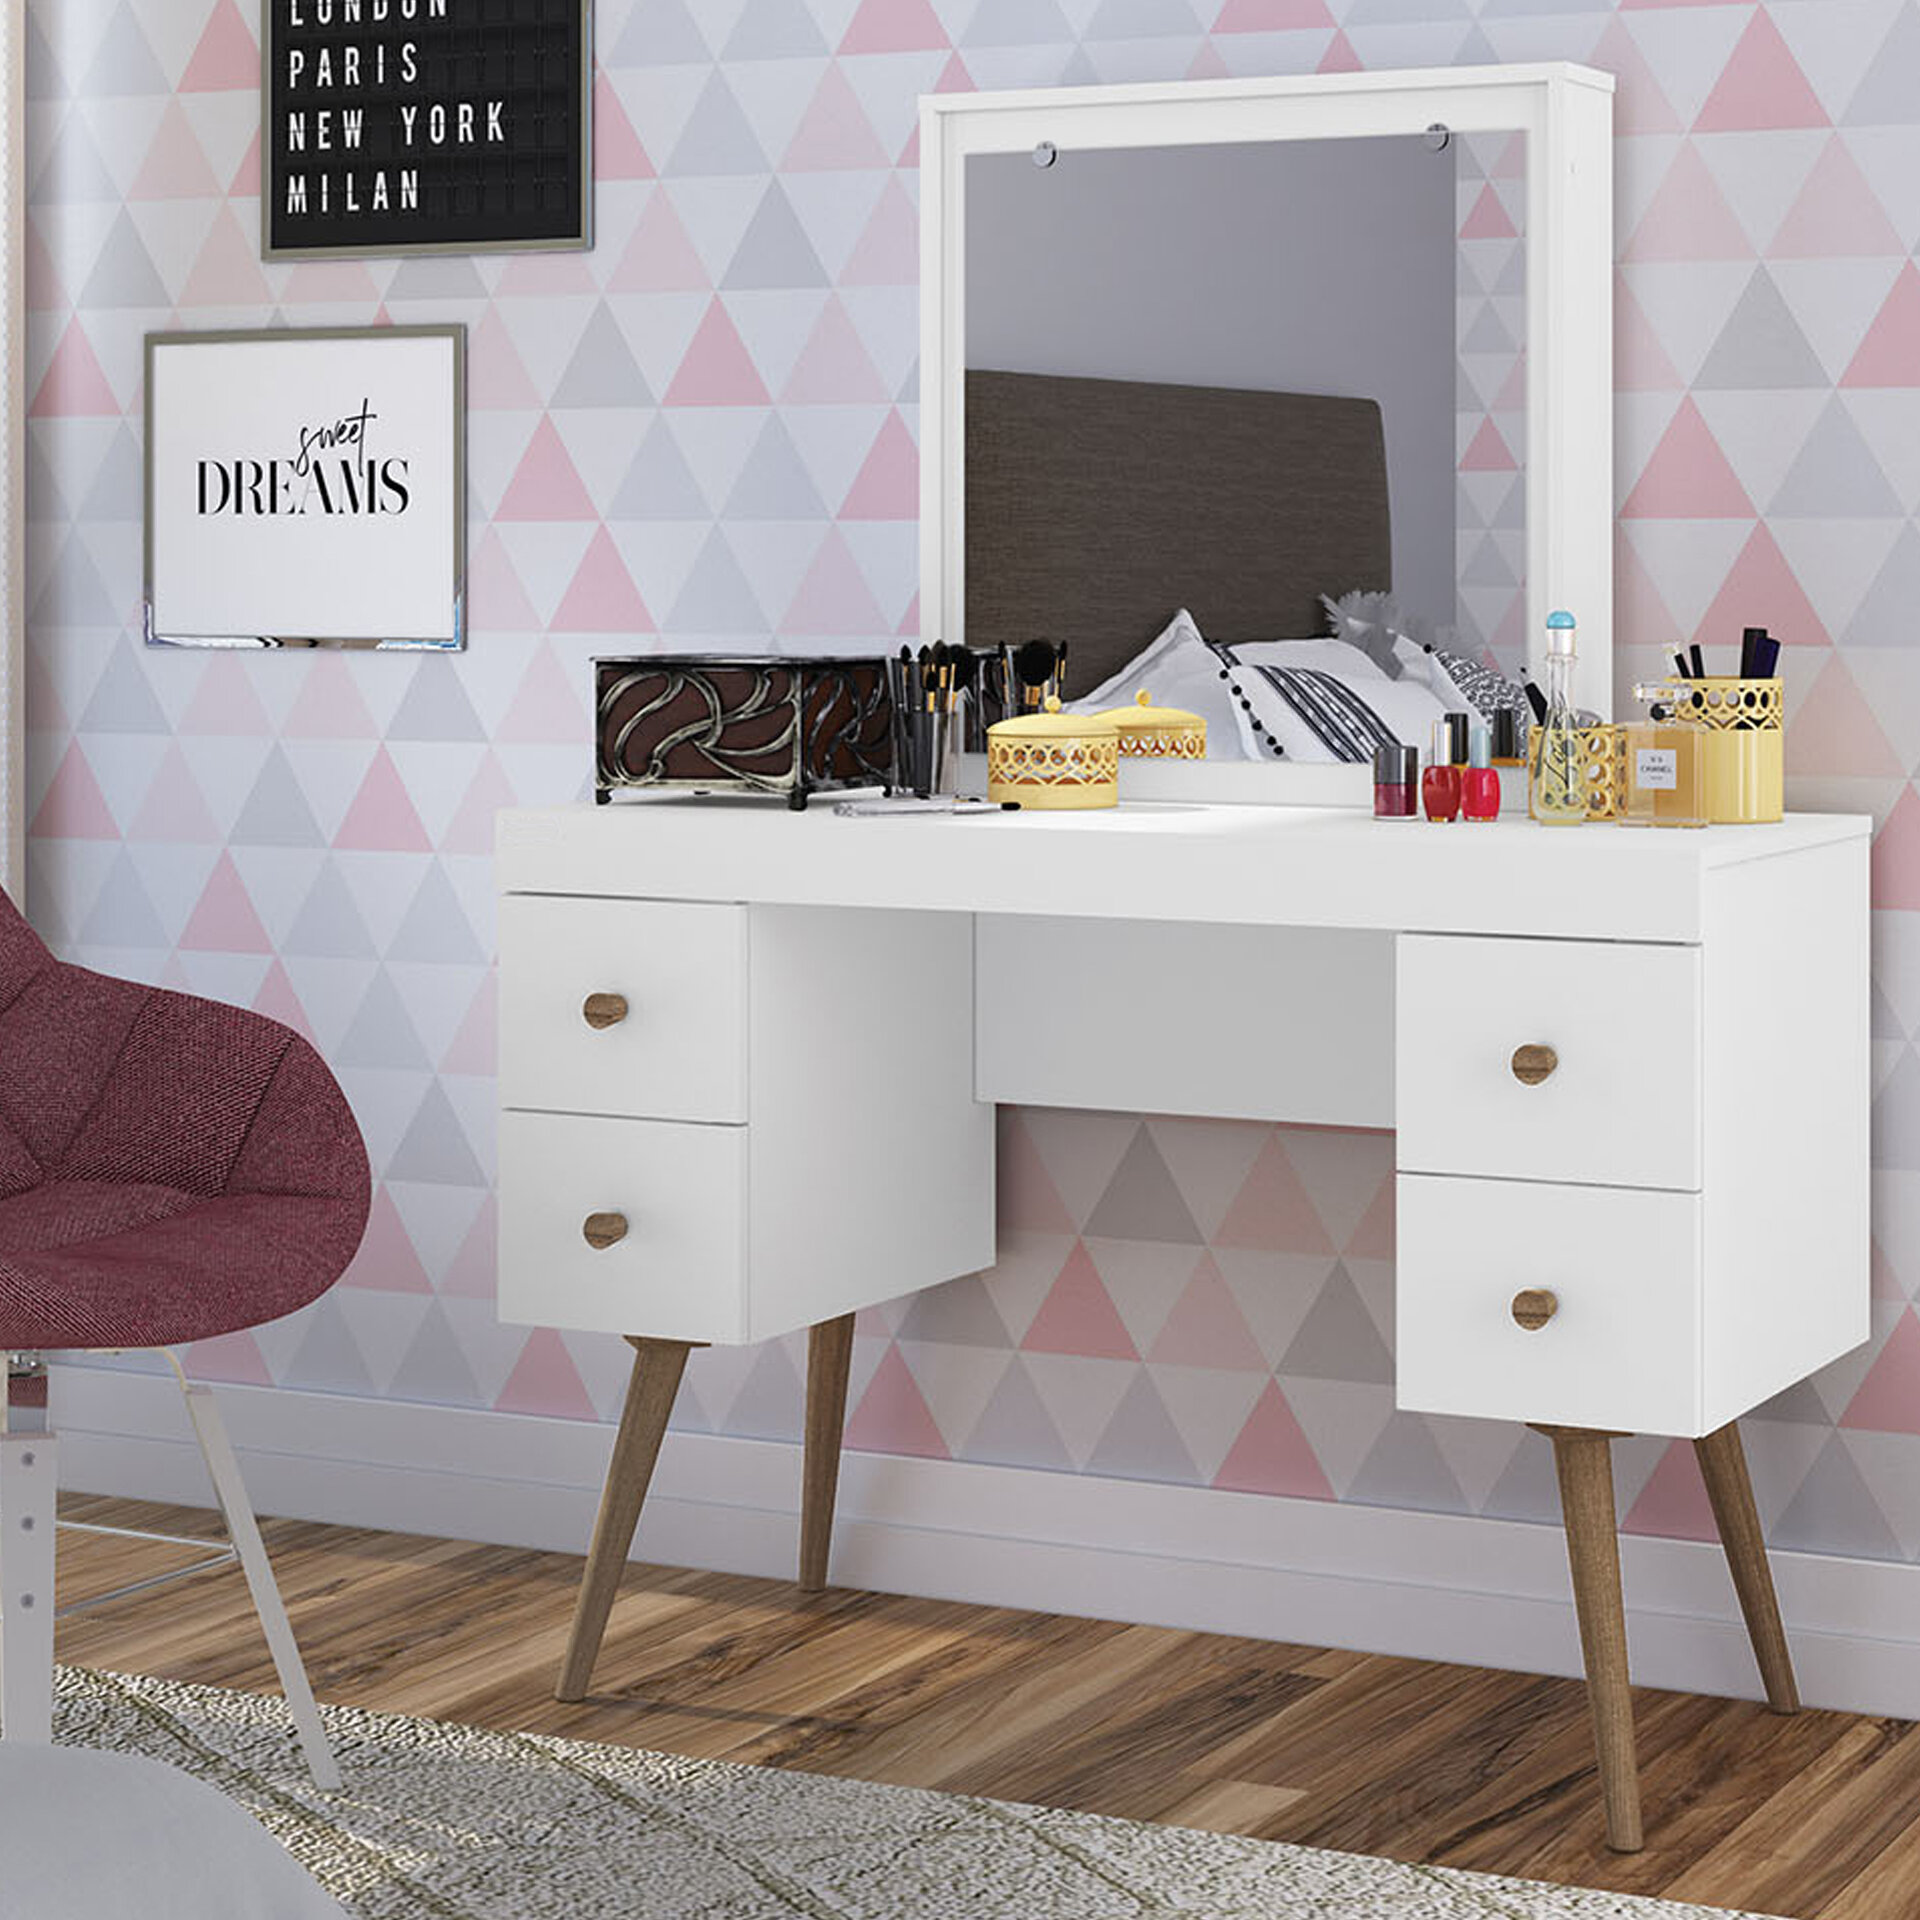 Sensational Froehlich Dressing Vanity With Mirror Ncnpc Chair Design For Home Ncnpcorg